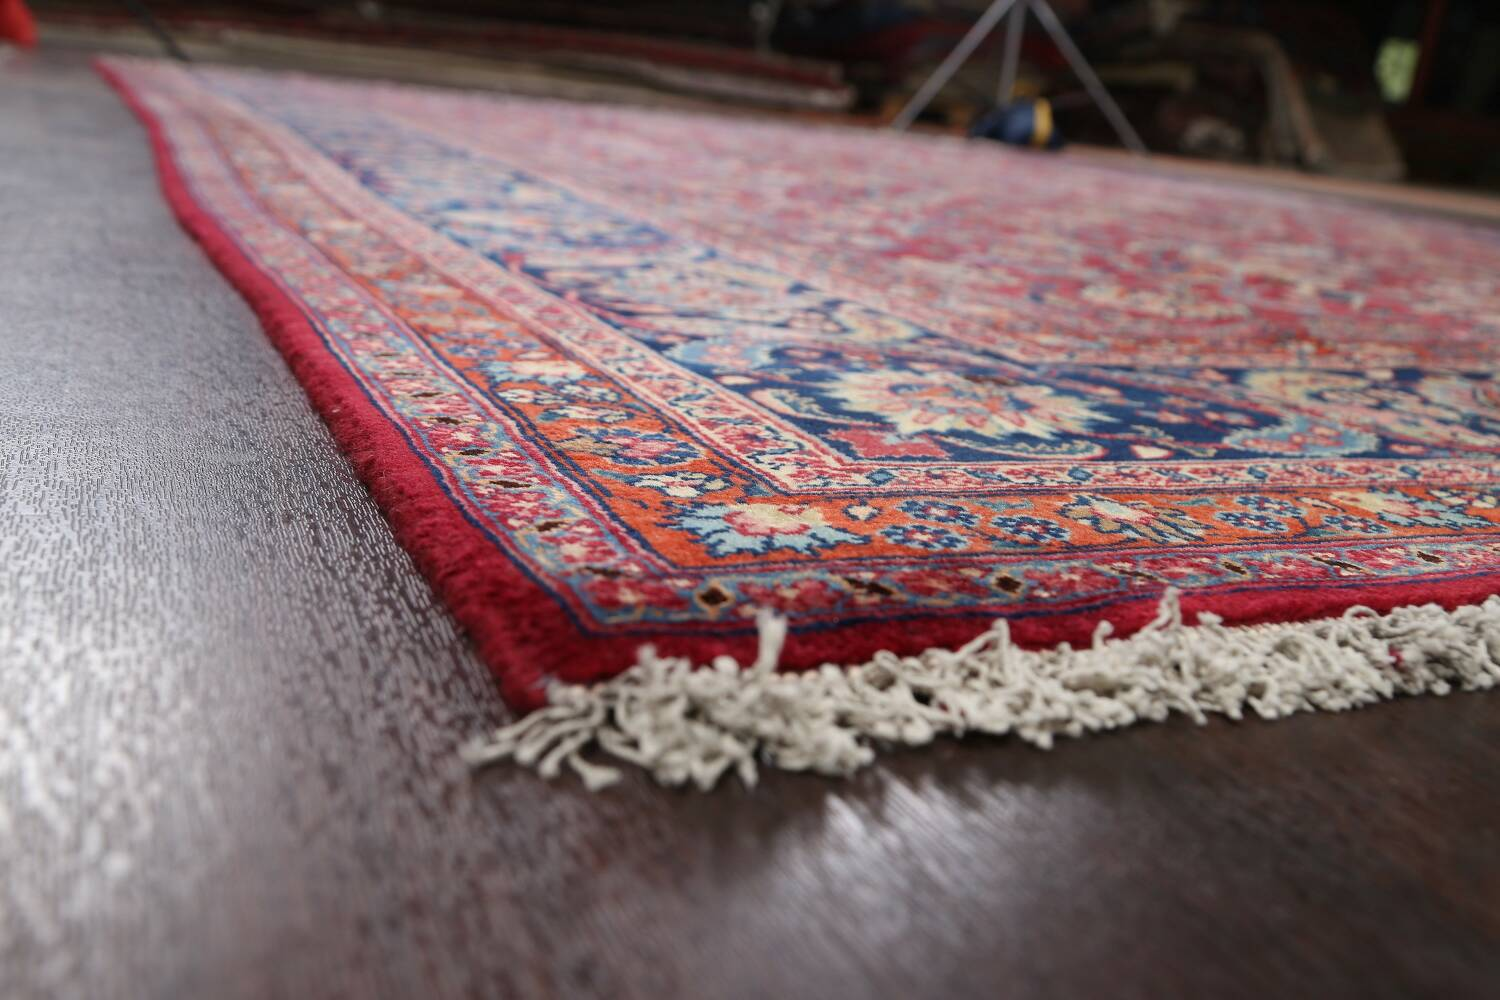 Antique Floral Vegetable Dye Mashad Persian Area Rug 10x13 image 6